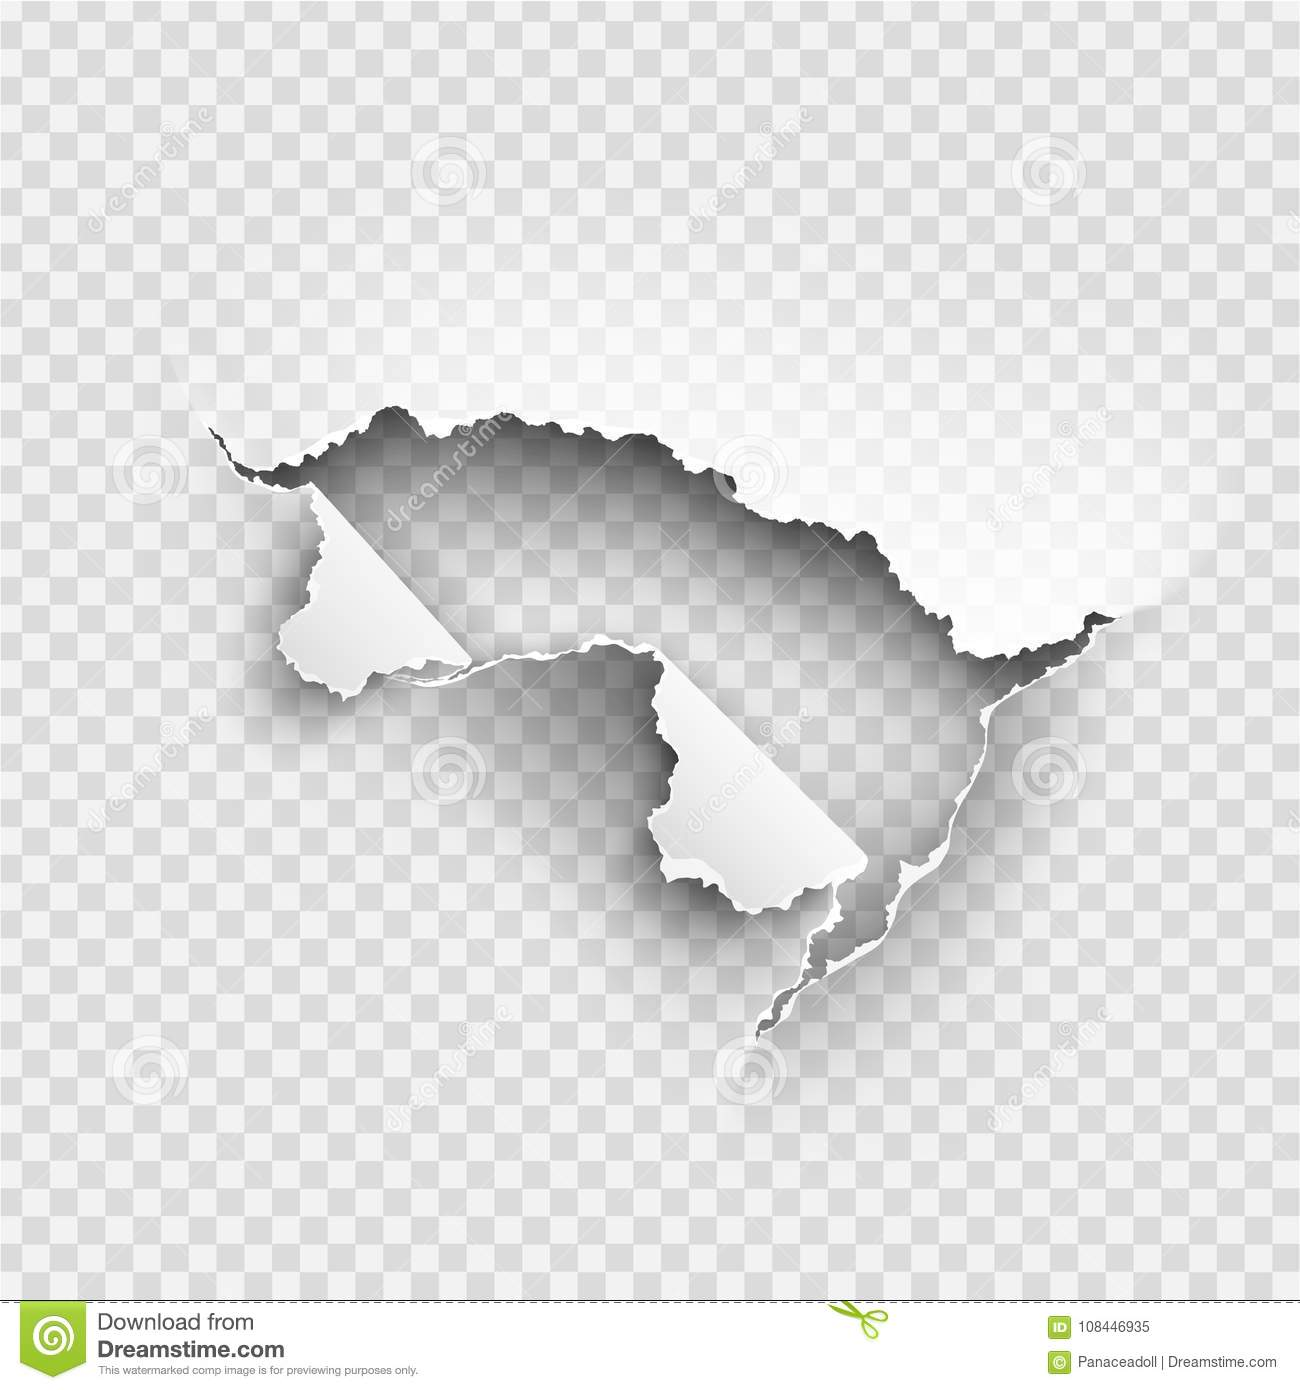 hole torn in ripped paper on transparent stock vector - illustration